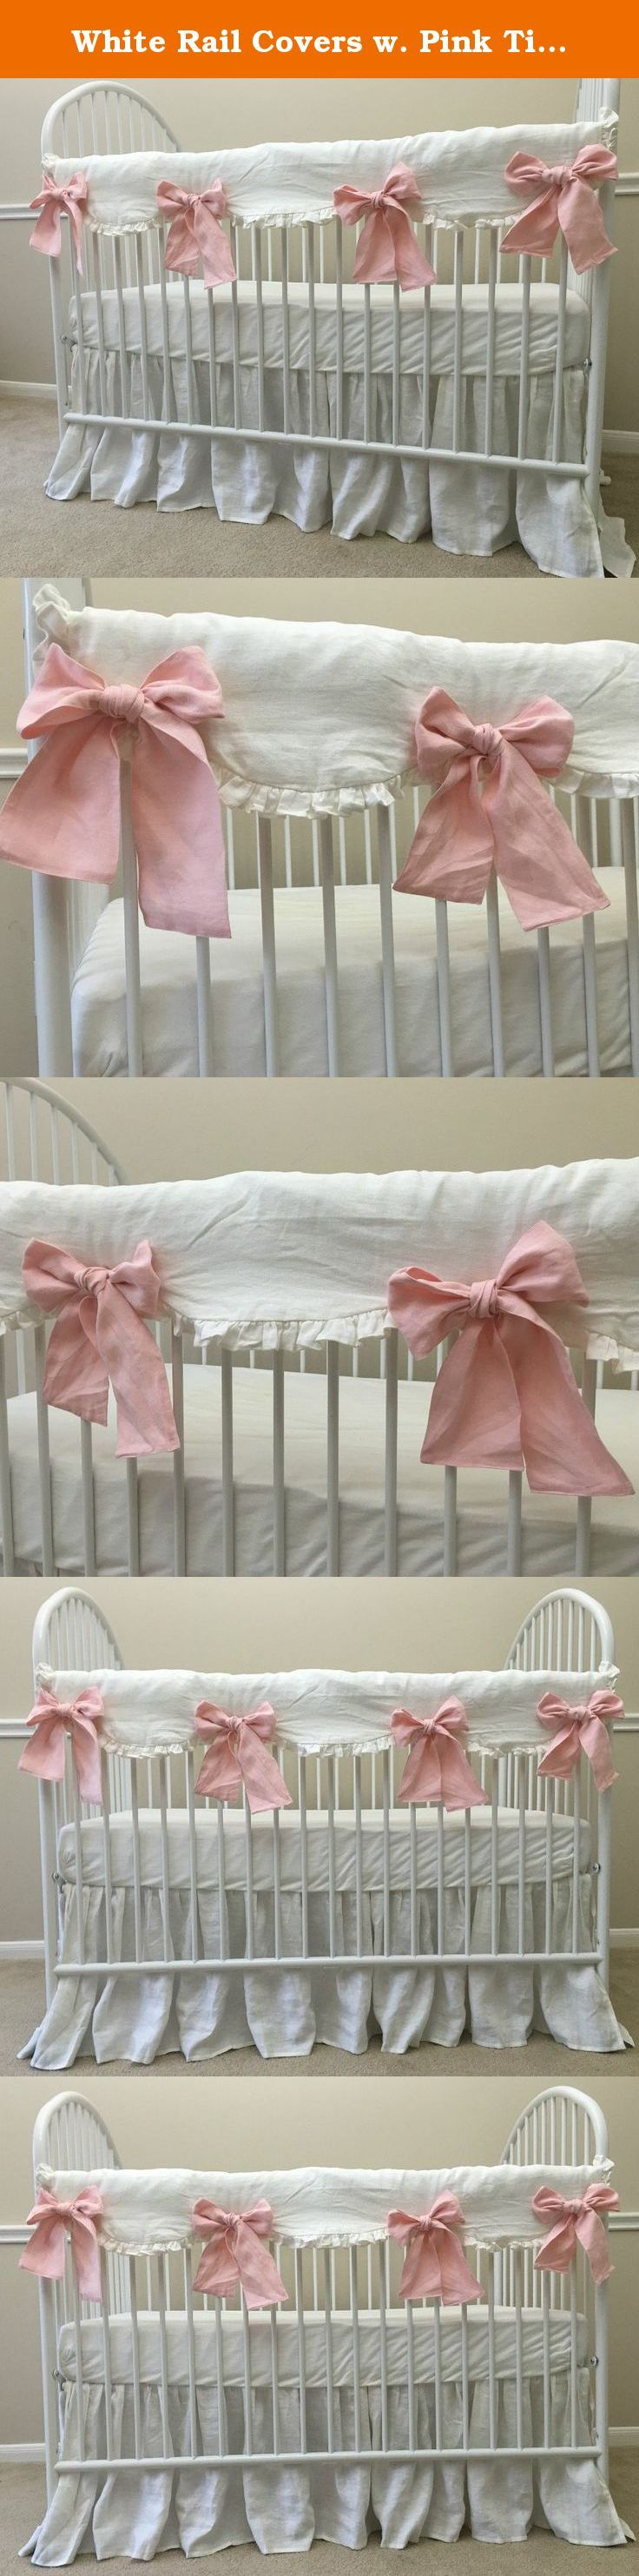 White Rail Covers w. Pink Ties - Scalloped with ruffle hem, Crib Rail Cover for Teething, Handmade Bumperless Crib Bedding Set, Baby Bedding Set, FREE SHIPPING. Nursery room is one of the most happening part of your home where imaginations have no boundaries. This scalloped shaped white rail cover with self-ruffles is classic and pink ties are please to the eye and light up the room. This rail cover is perfect for your bumperless baby bedding and will protect the crib against little teeth...